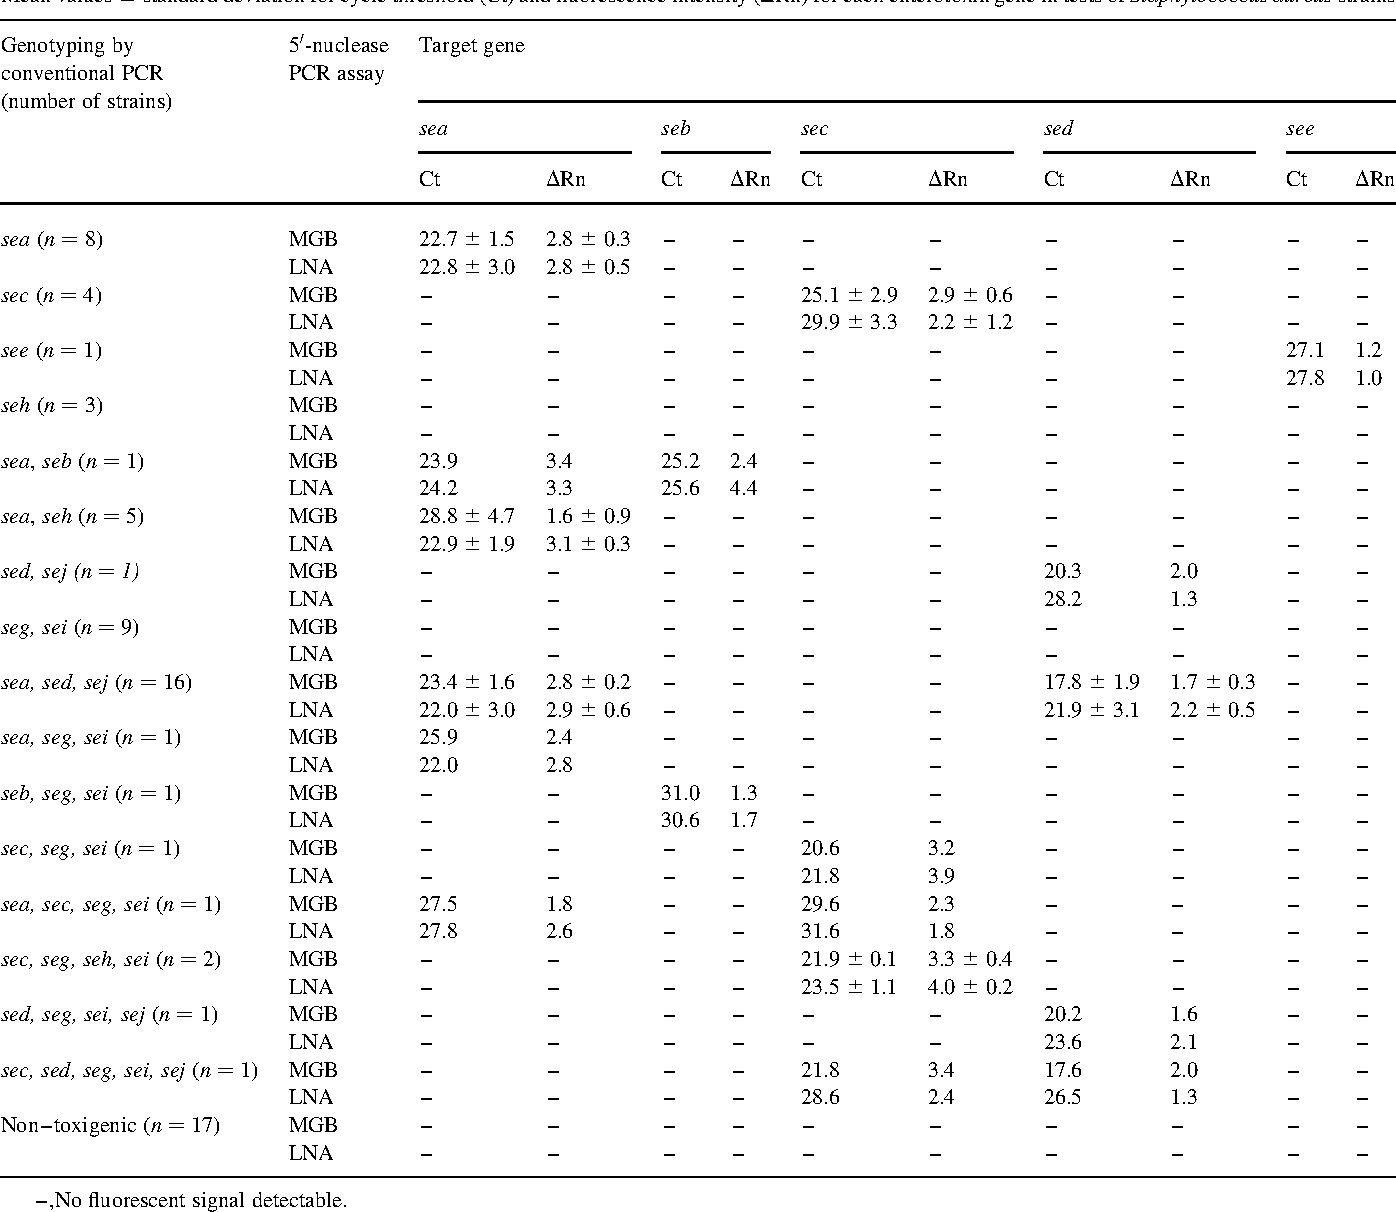 Table 1 from Evaluation of the performance of LNA and MGB